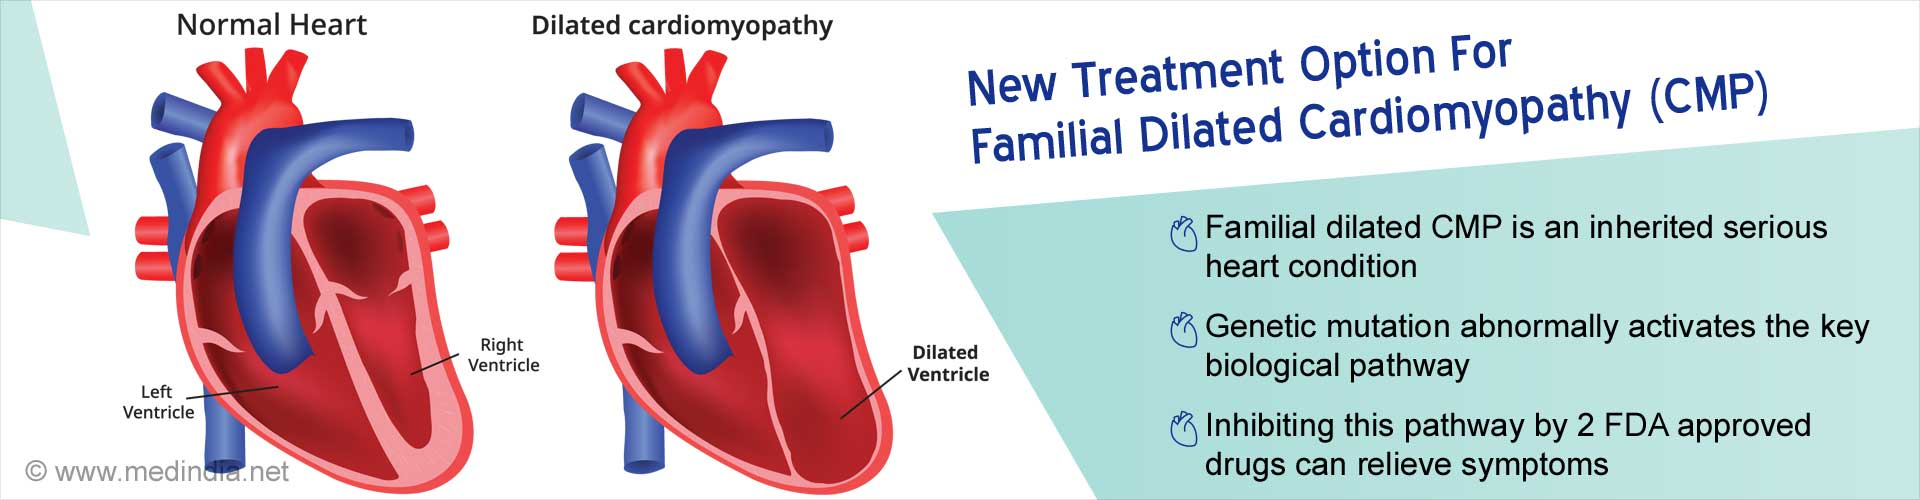 New treatment option for familial dilated cardiomyopathy (DCM). Familial DCM is an inherited serious heart condition. Genetic mutation abnormally activates the key biological pathway. Inhibiting this pathway by 2 FDA approved drugs can relieve symptoms.